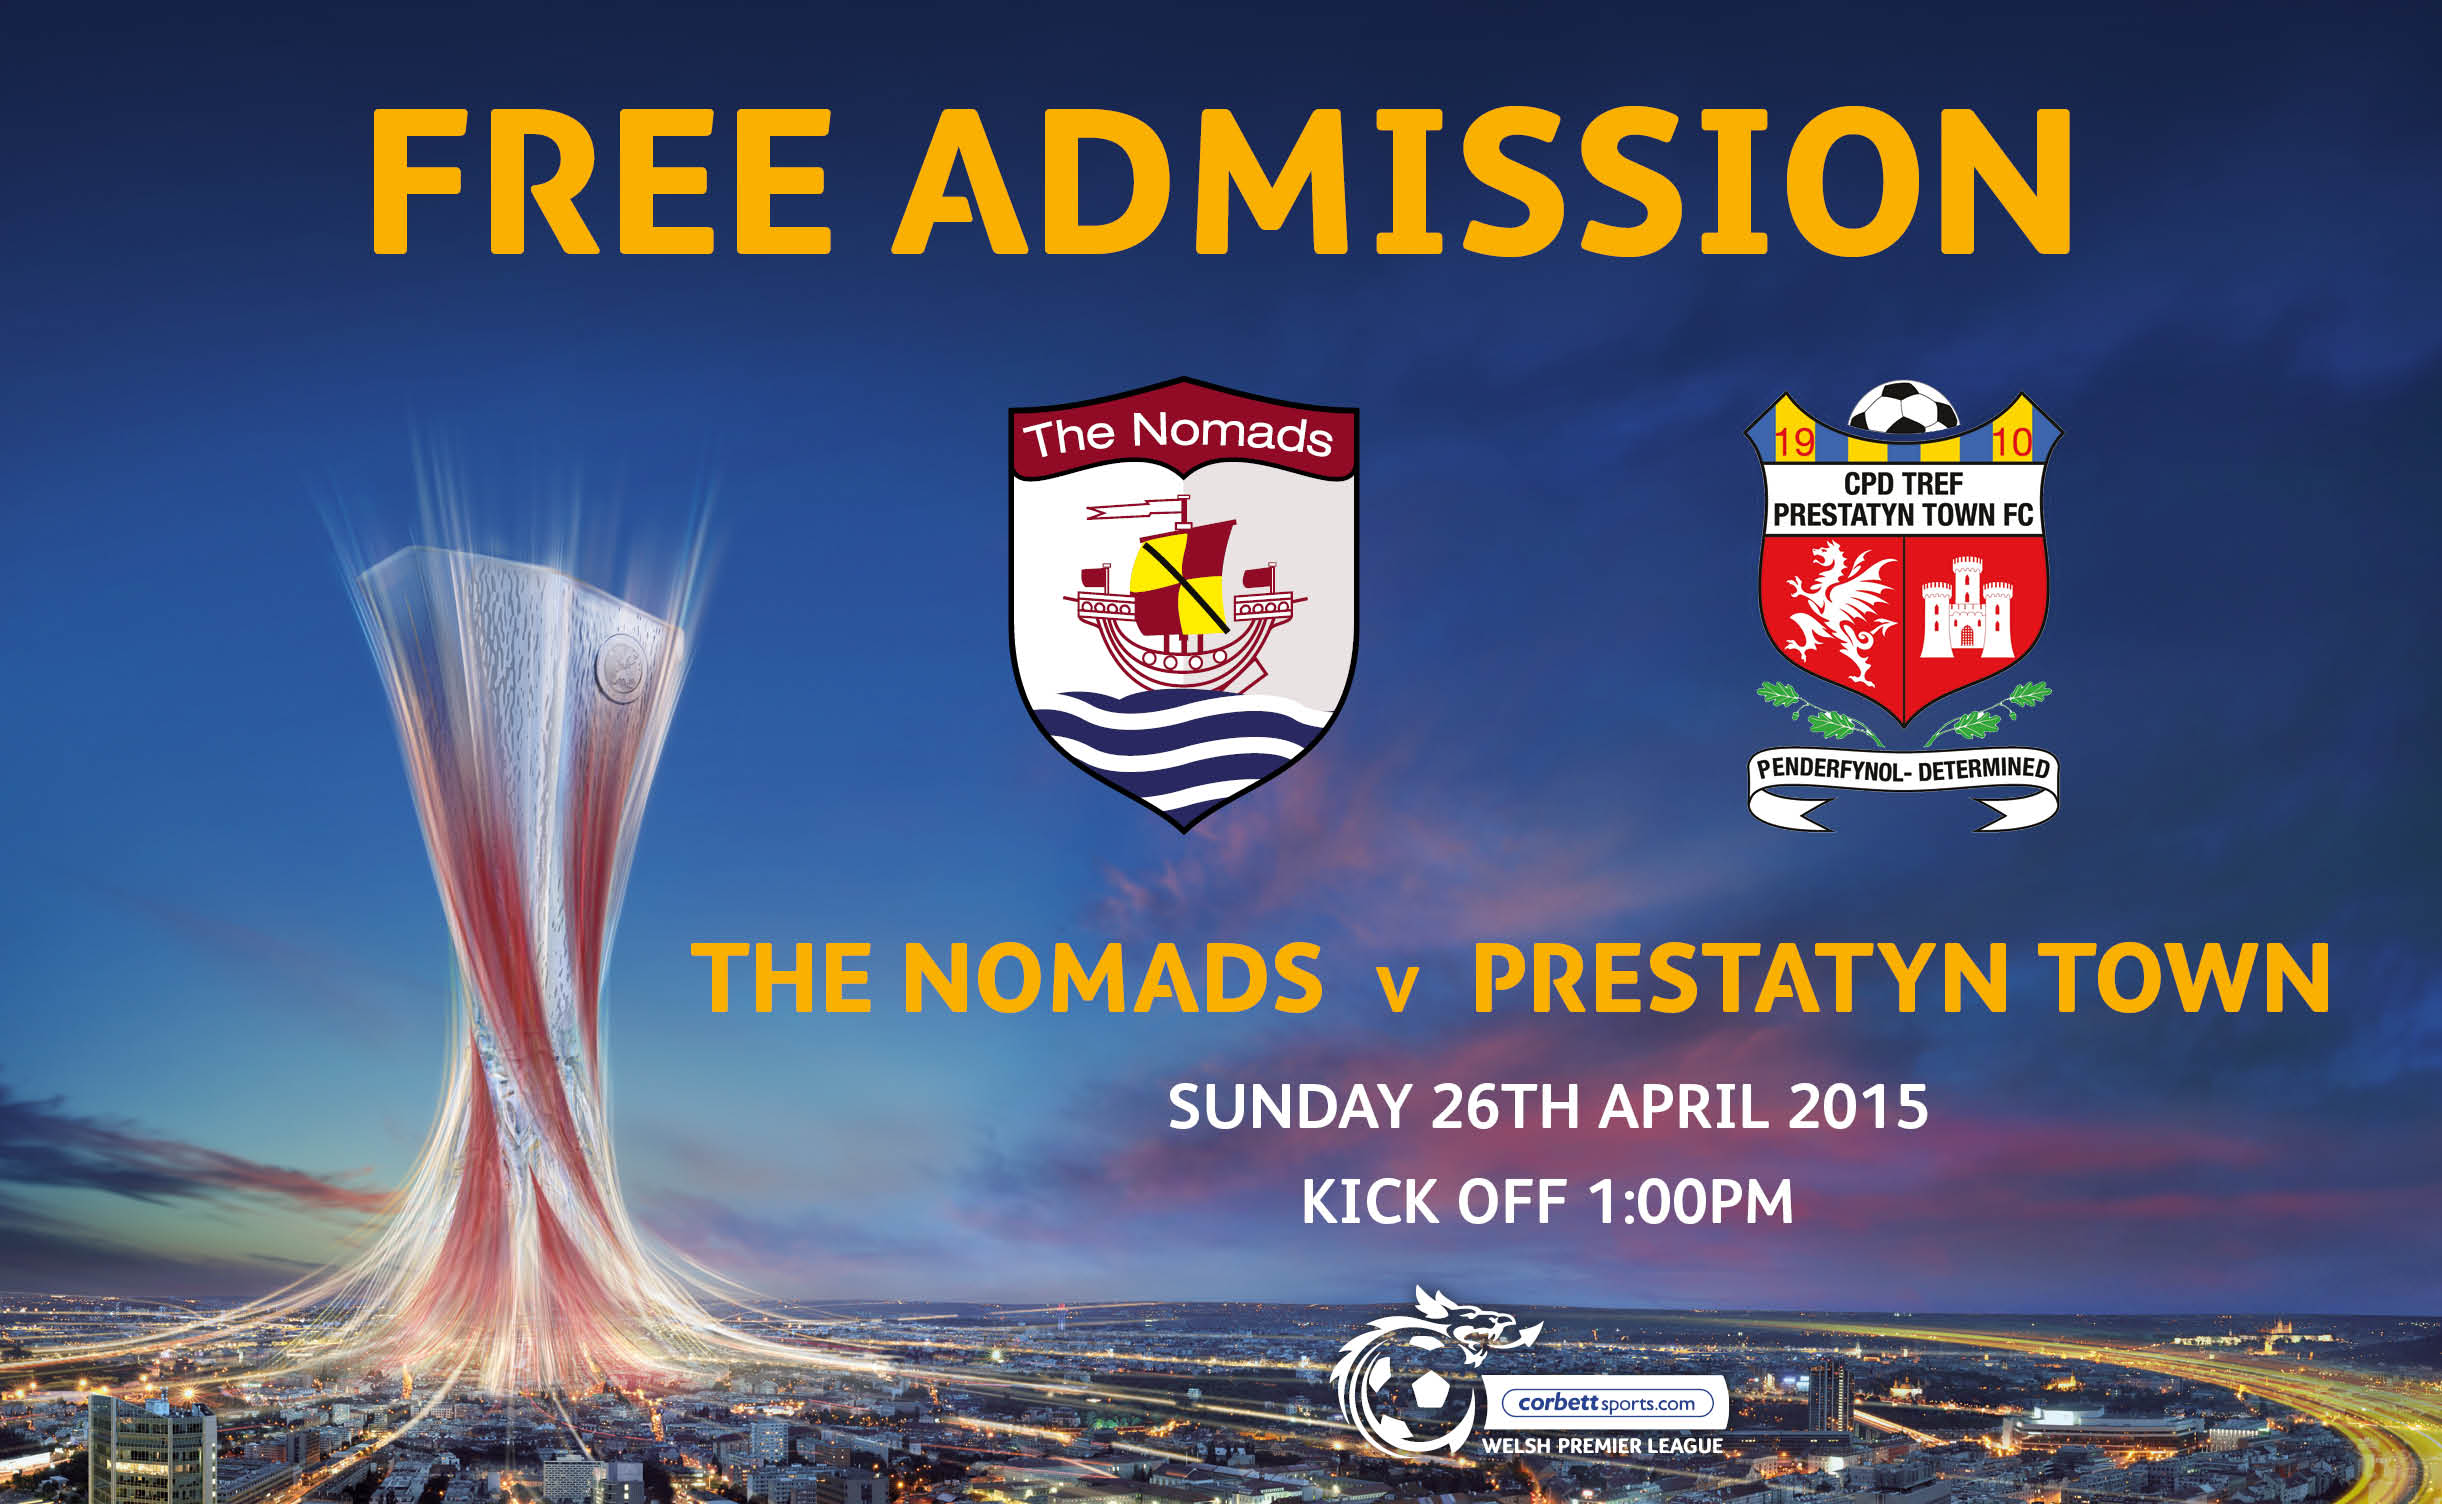 The Nomads offer free admission in final push for Europa League Play Offs